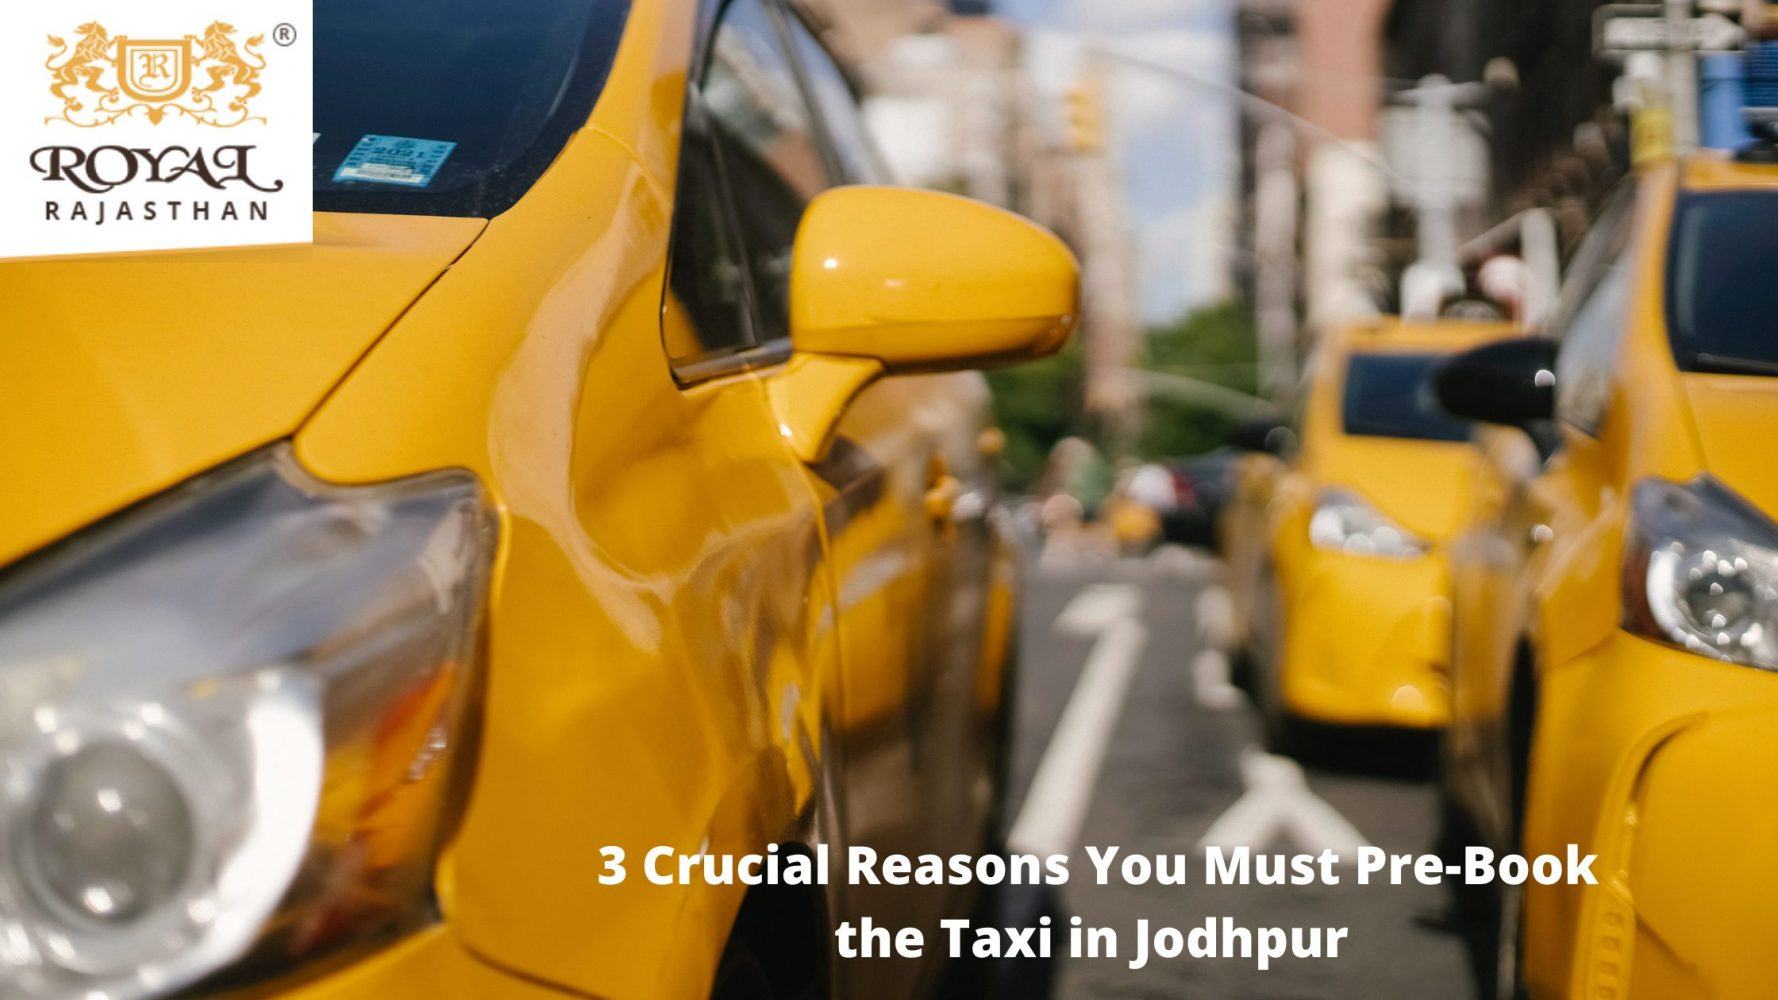 3 Principal Reasons Why You Need to Pre-Book the Taxi in Jodhpur